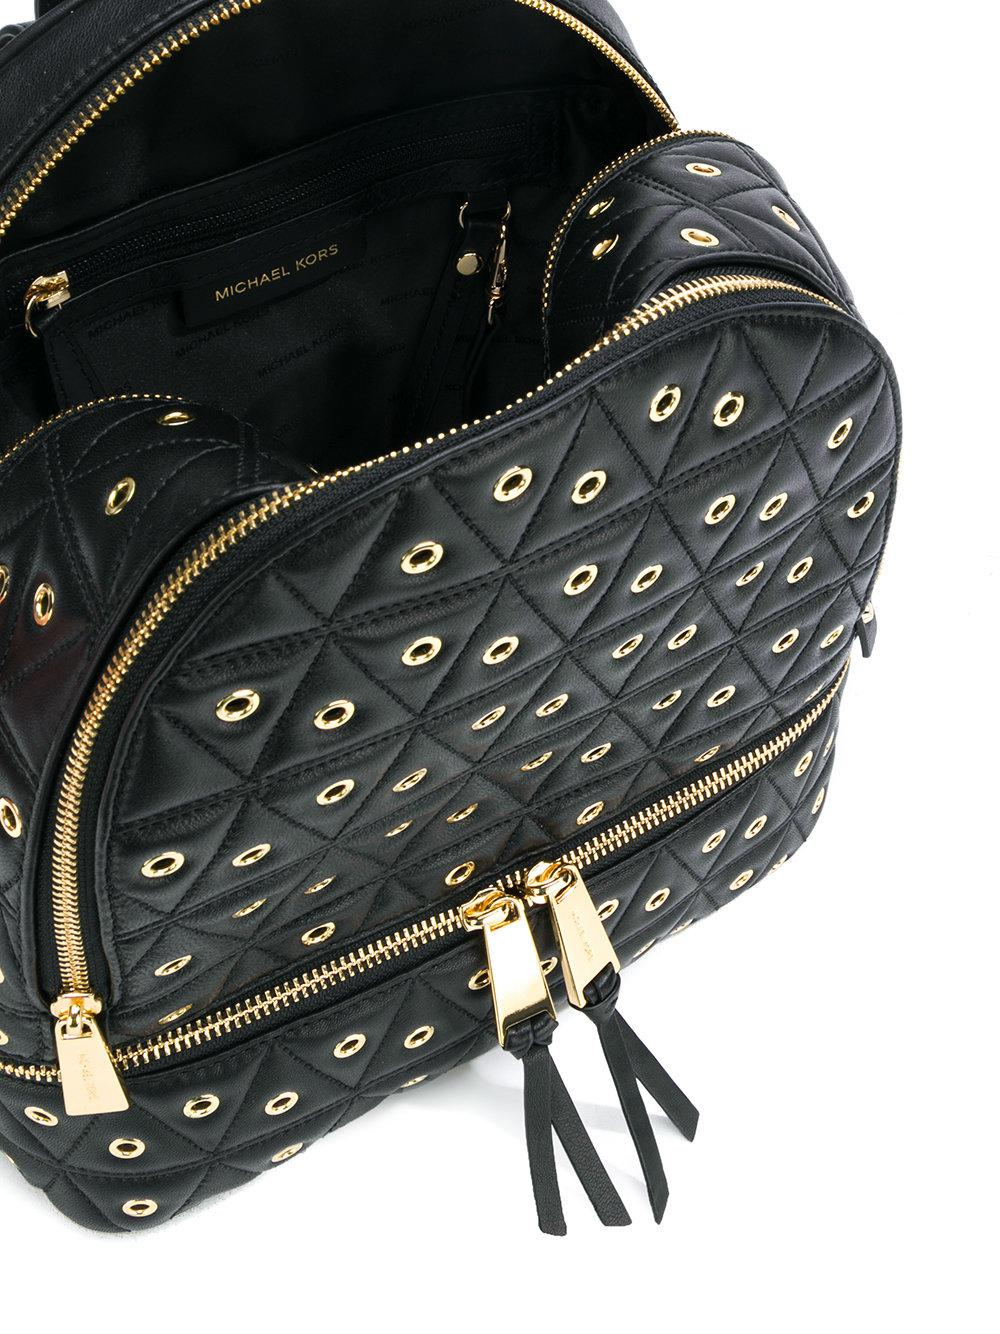 MICHAEL Michael Kors Leather Rhea Medium Quilted Backpack in Black